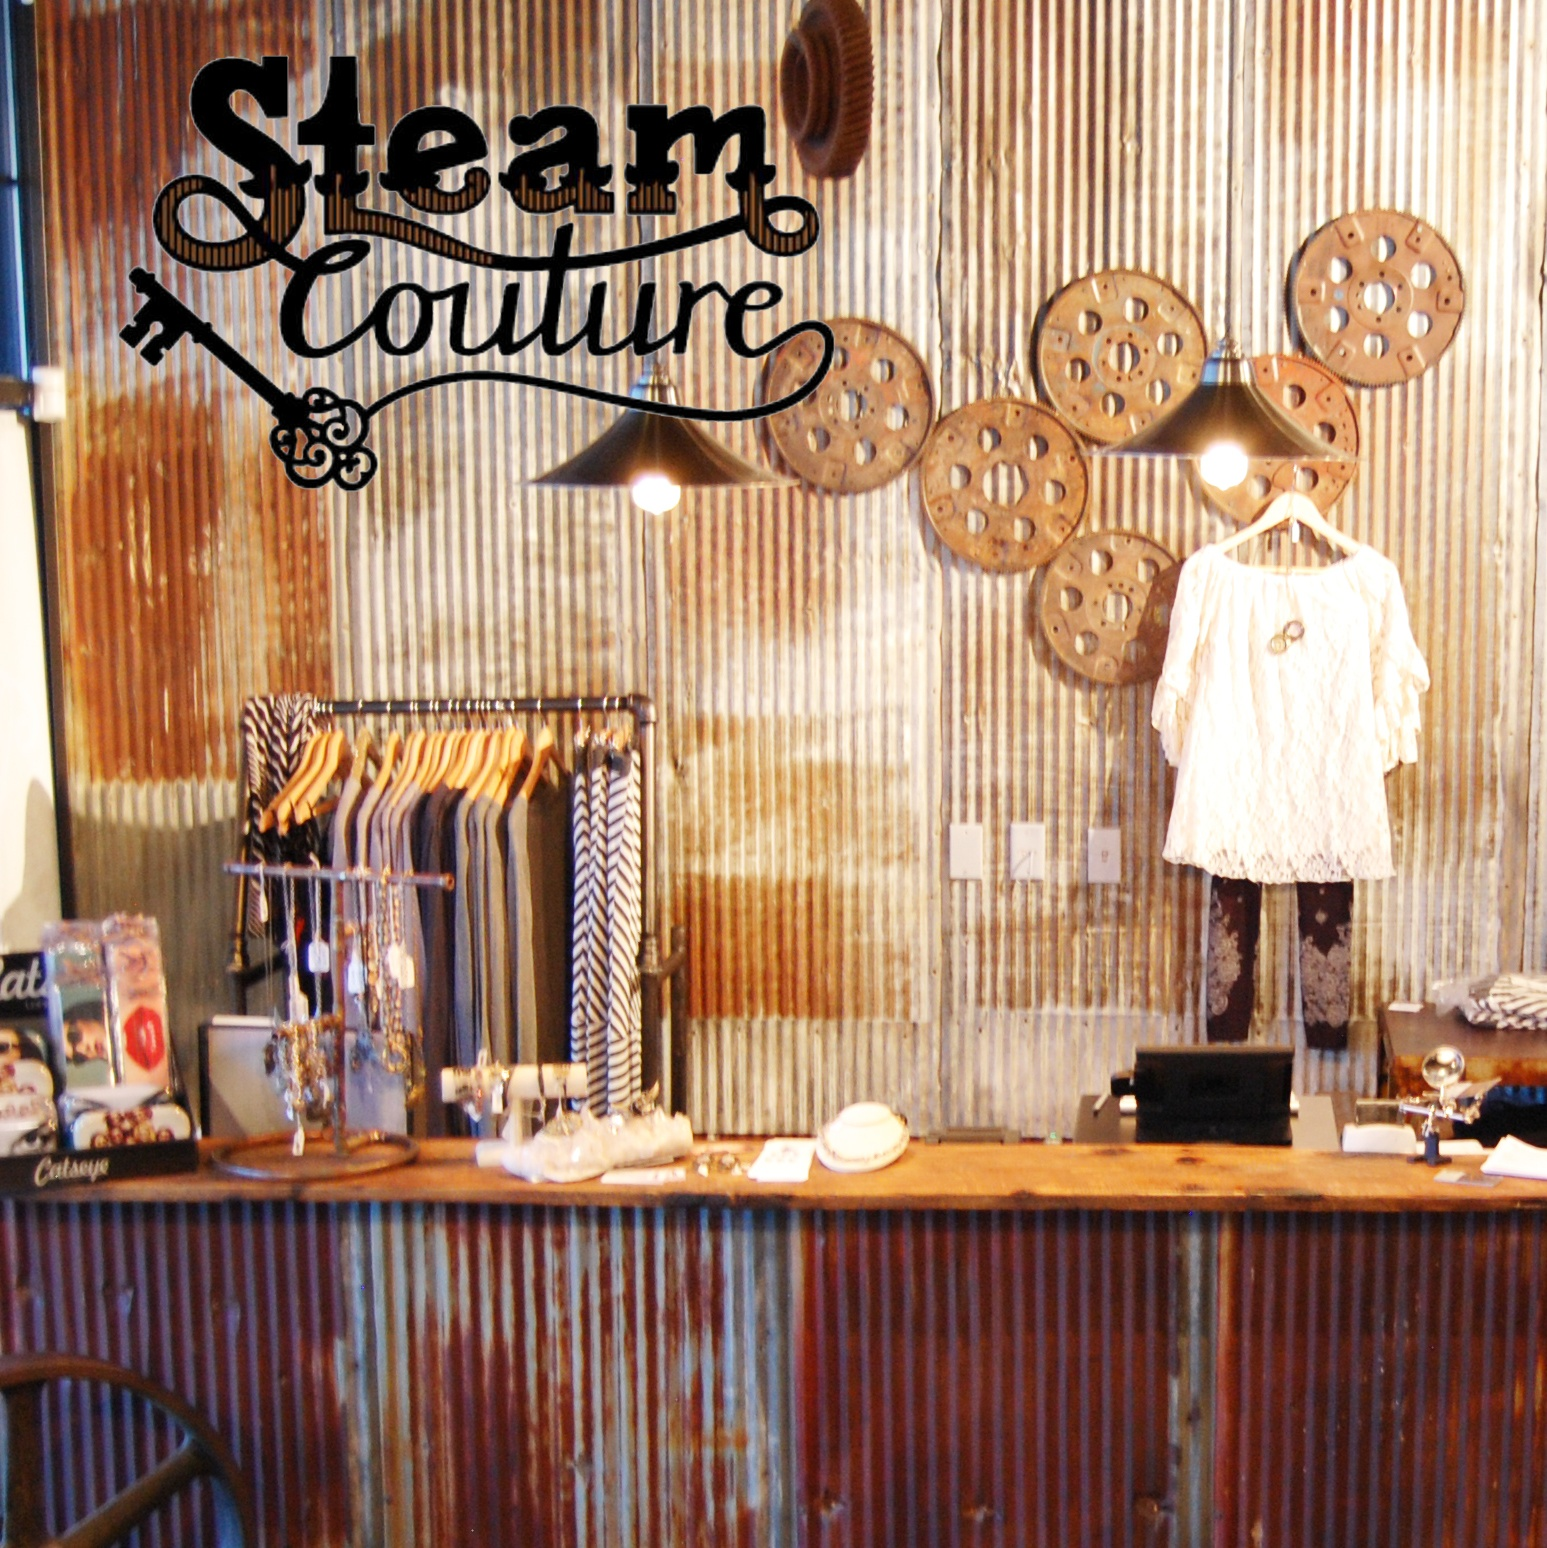 Steam Couture_small business POS